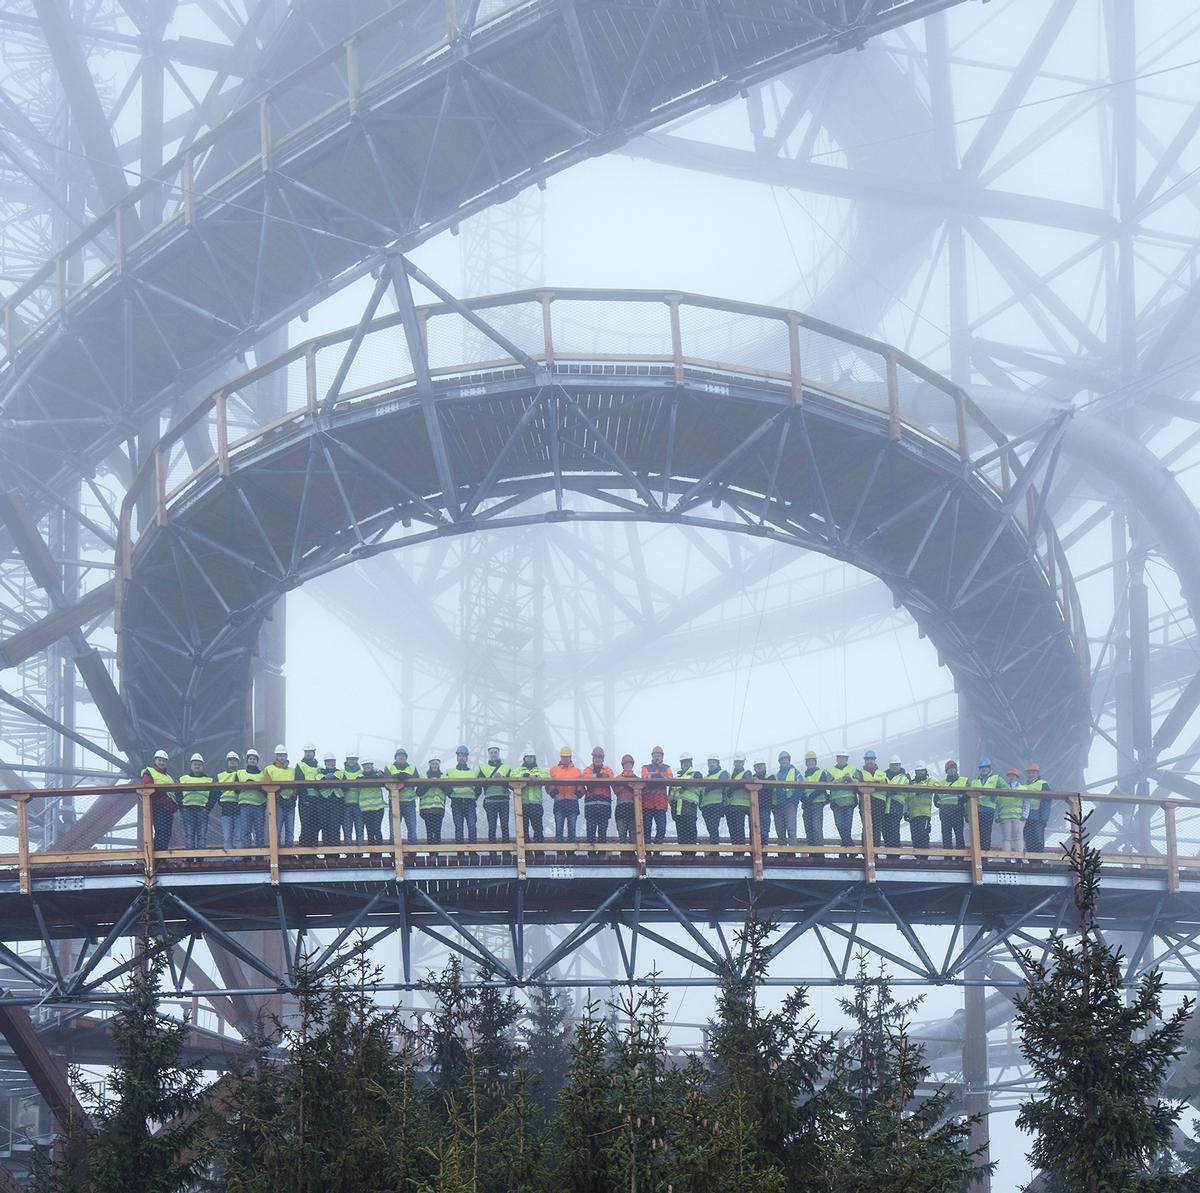 The Sky Walk was largely assembled by hand, as local safety and construction laws limited the use of machinery to assist workers on site / Jakub Skokan, Martin T?ma / BoysPlayNice